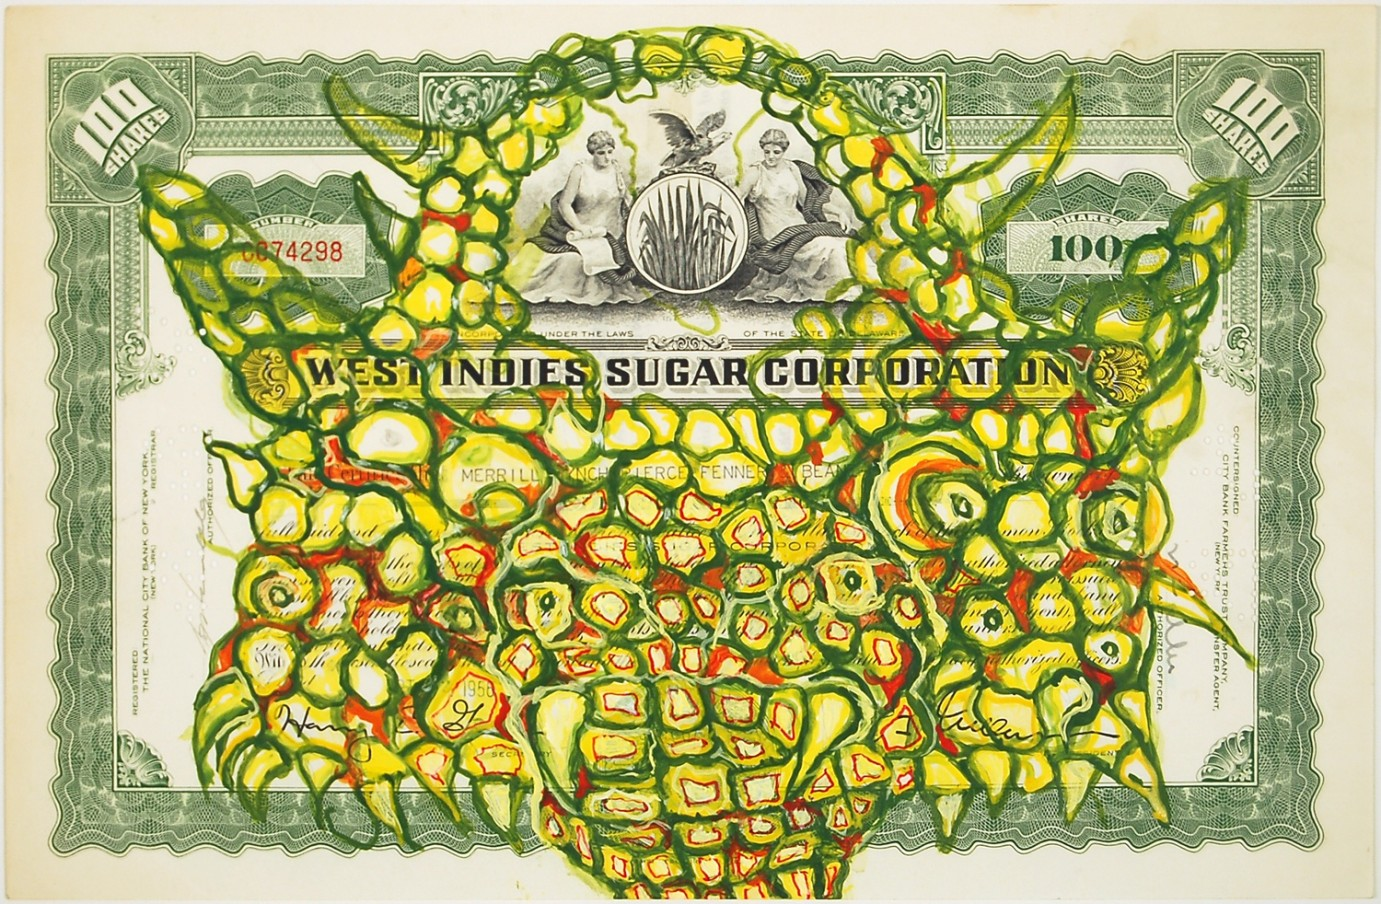 HEW LOCKE West Indies Sugar Corporation, 2009 Acrylic paint on paper 27.8 x 38 cm 11 x 15 in